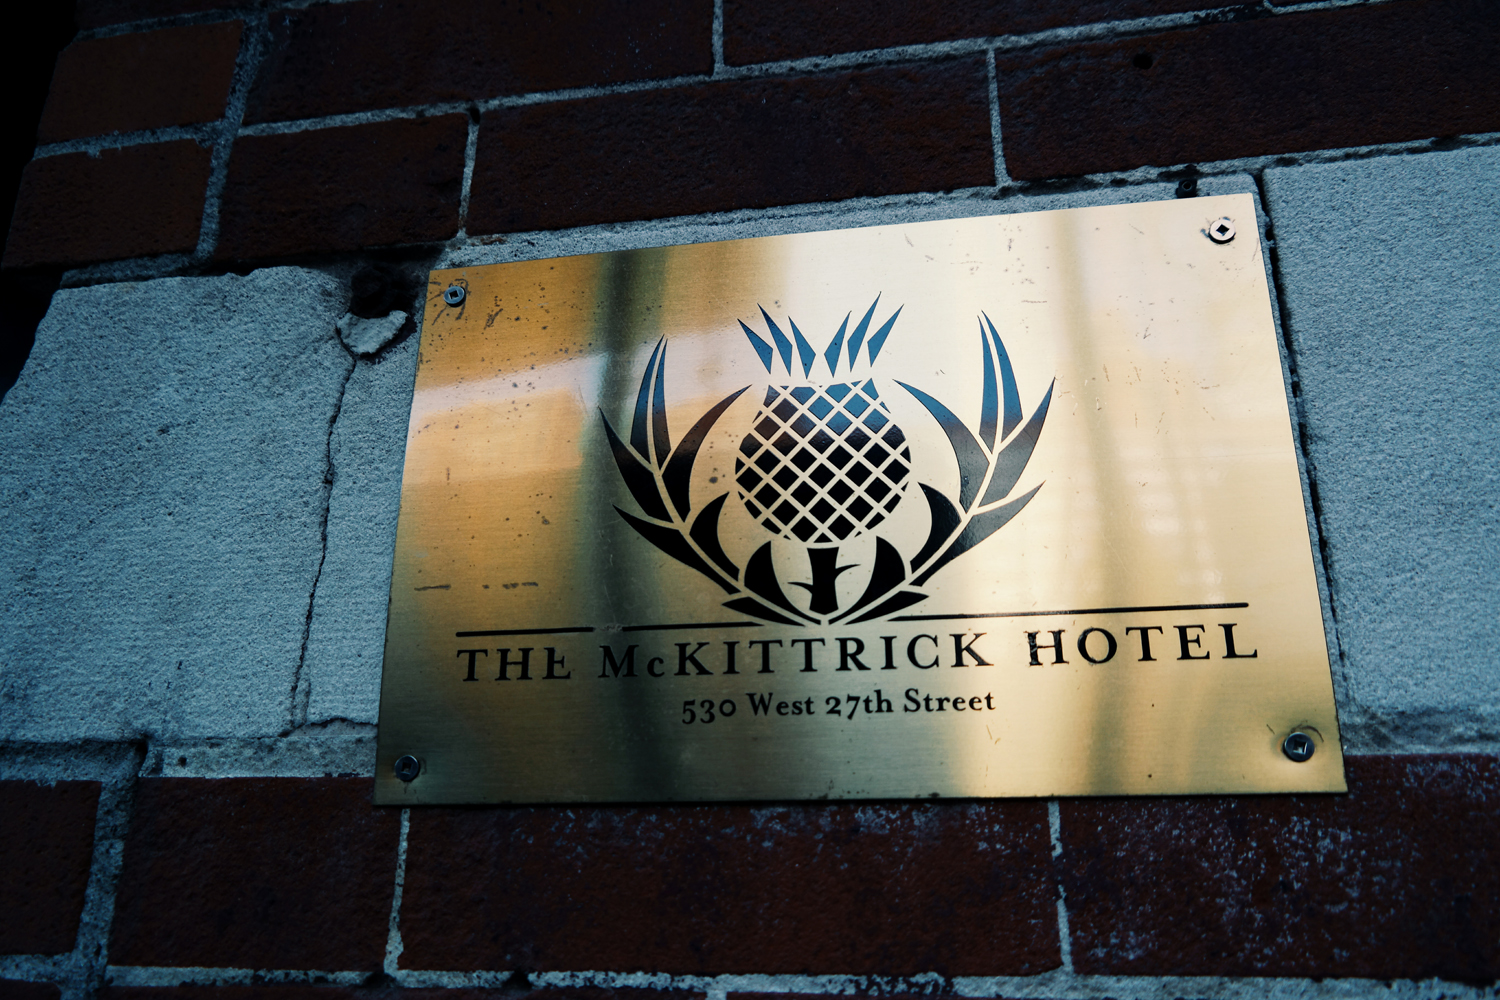 The McKittrick Hotel Sleep No more the show macbeth play Chelsea street New York City photo by United States of Paris blog